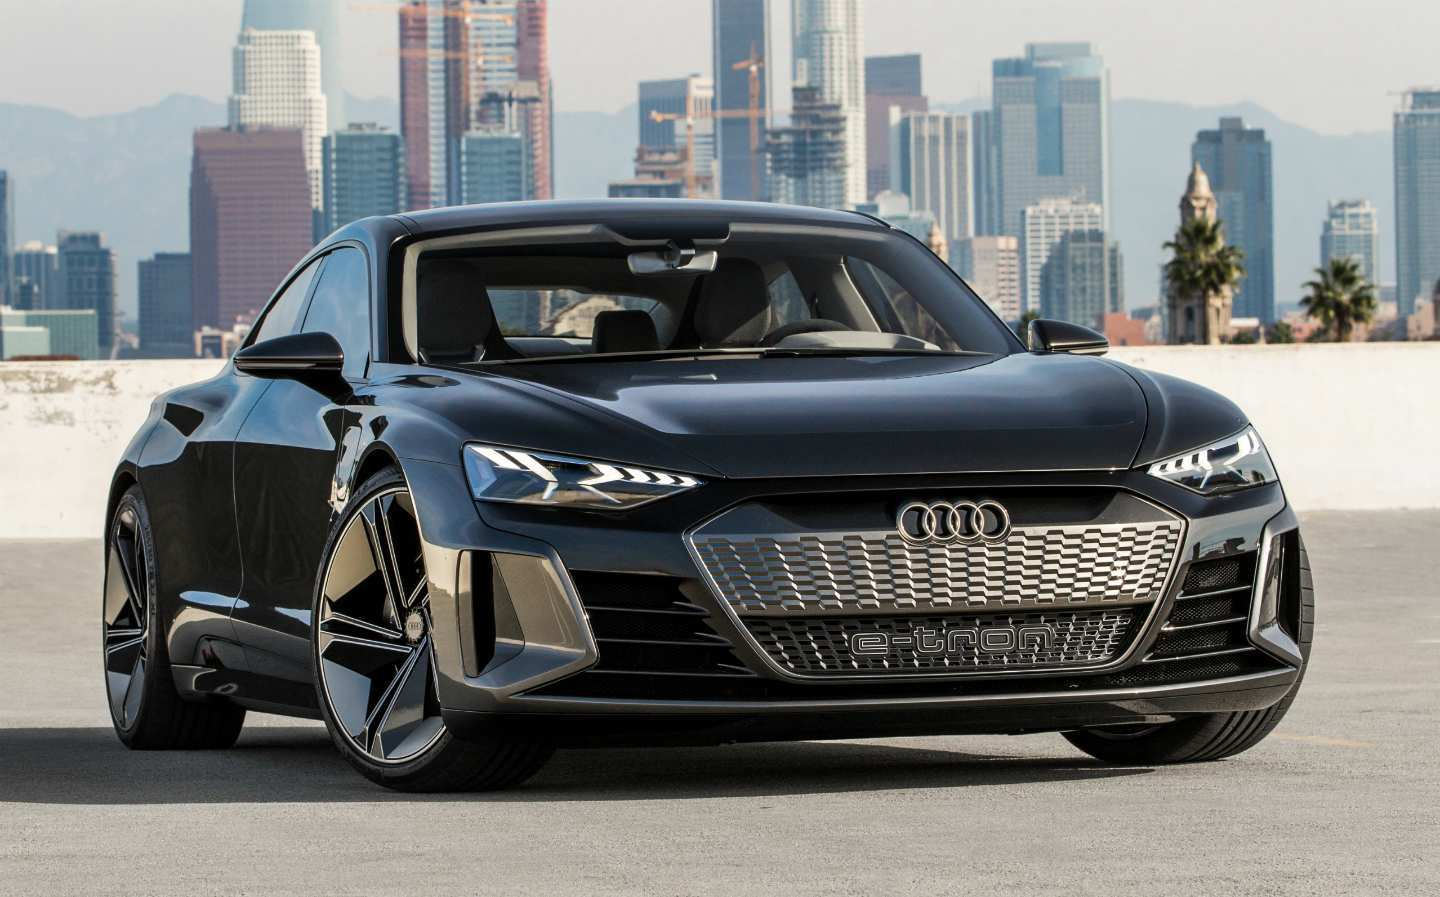 40 New 2020 Audi E Tron Gt Price Images